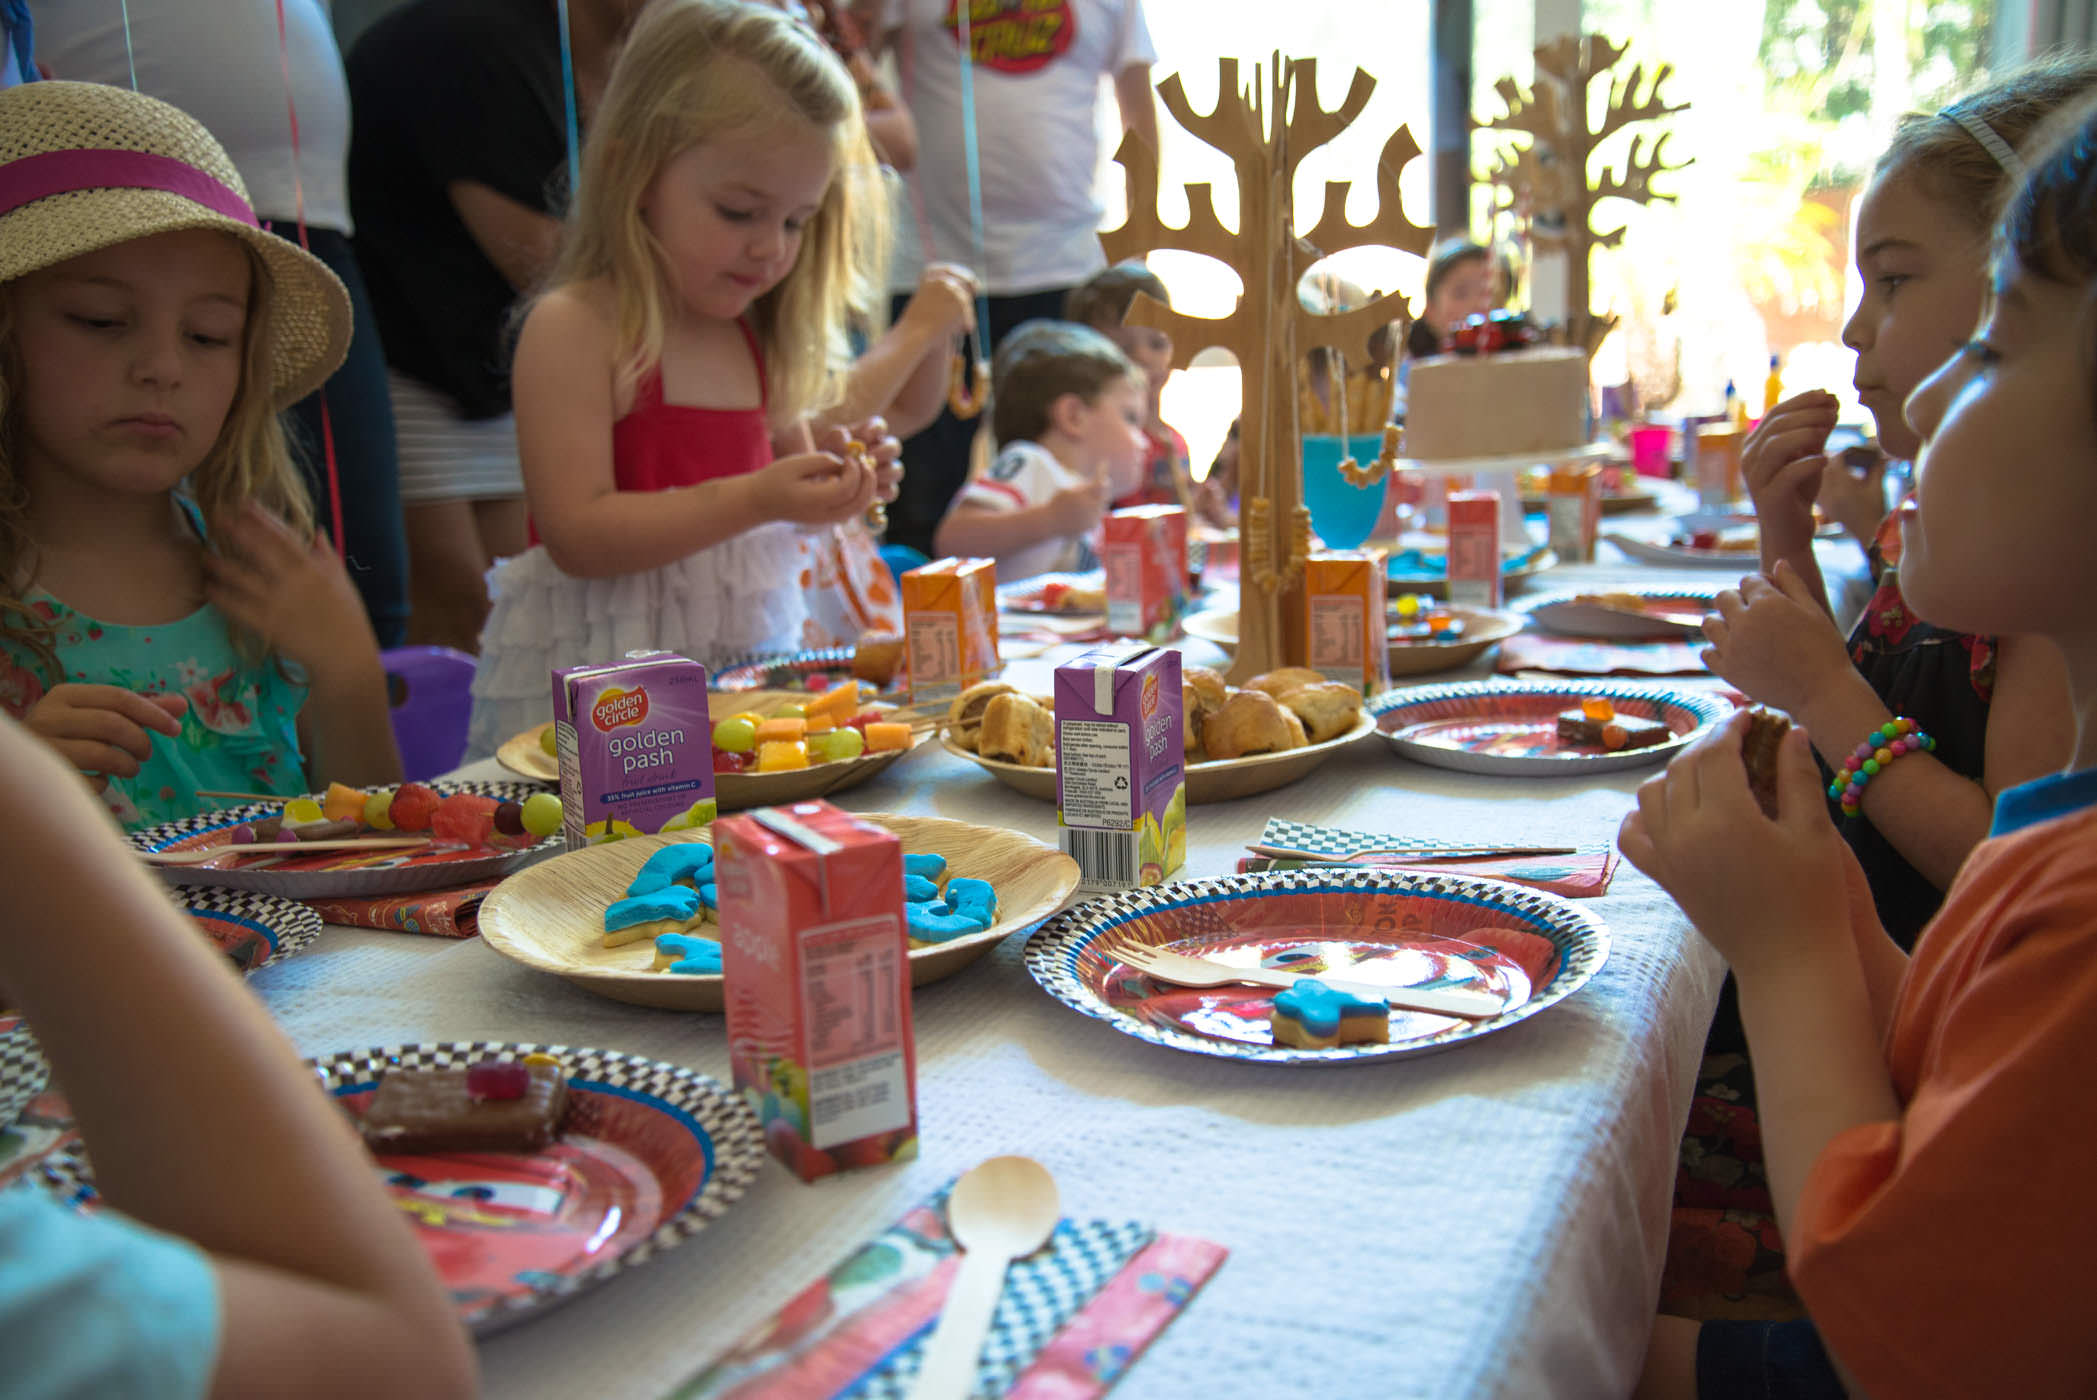 Amazing 94 Food Ideas For 5 Year Old Birthday Party